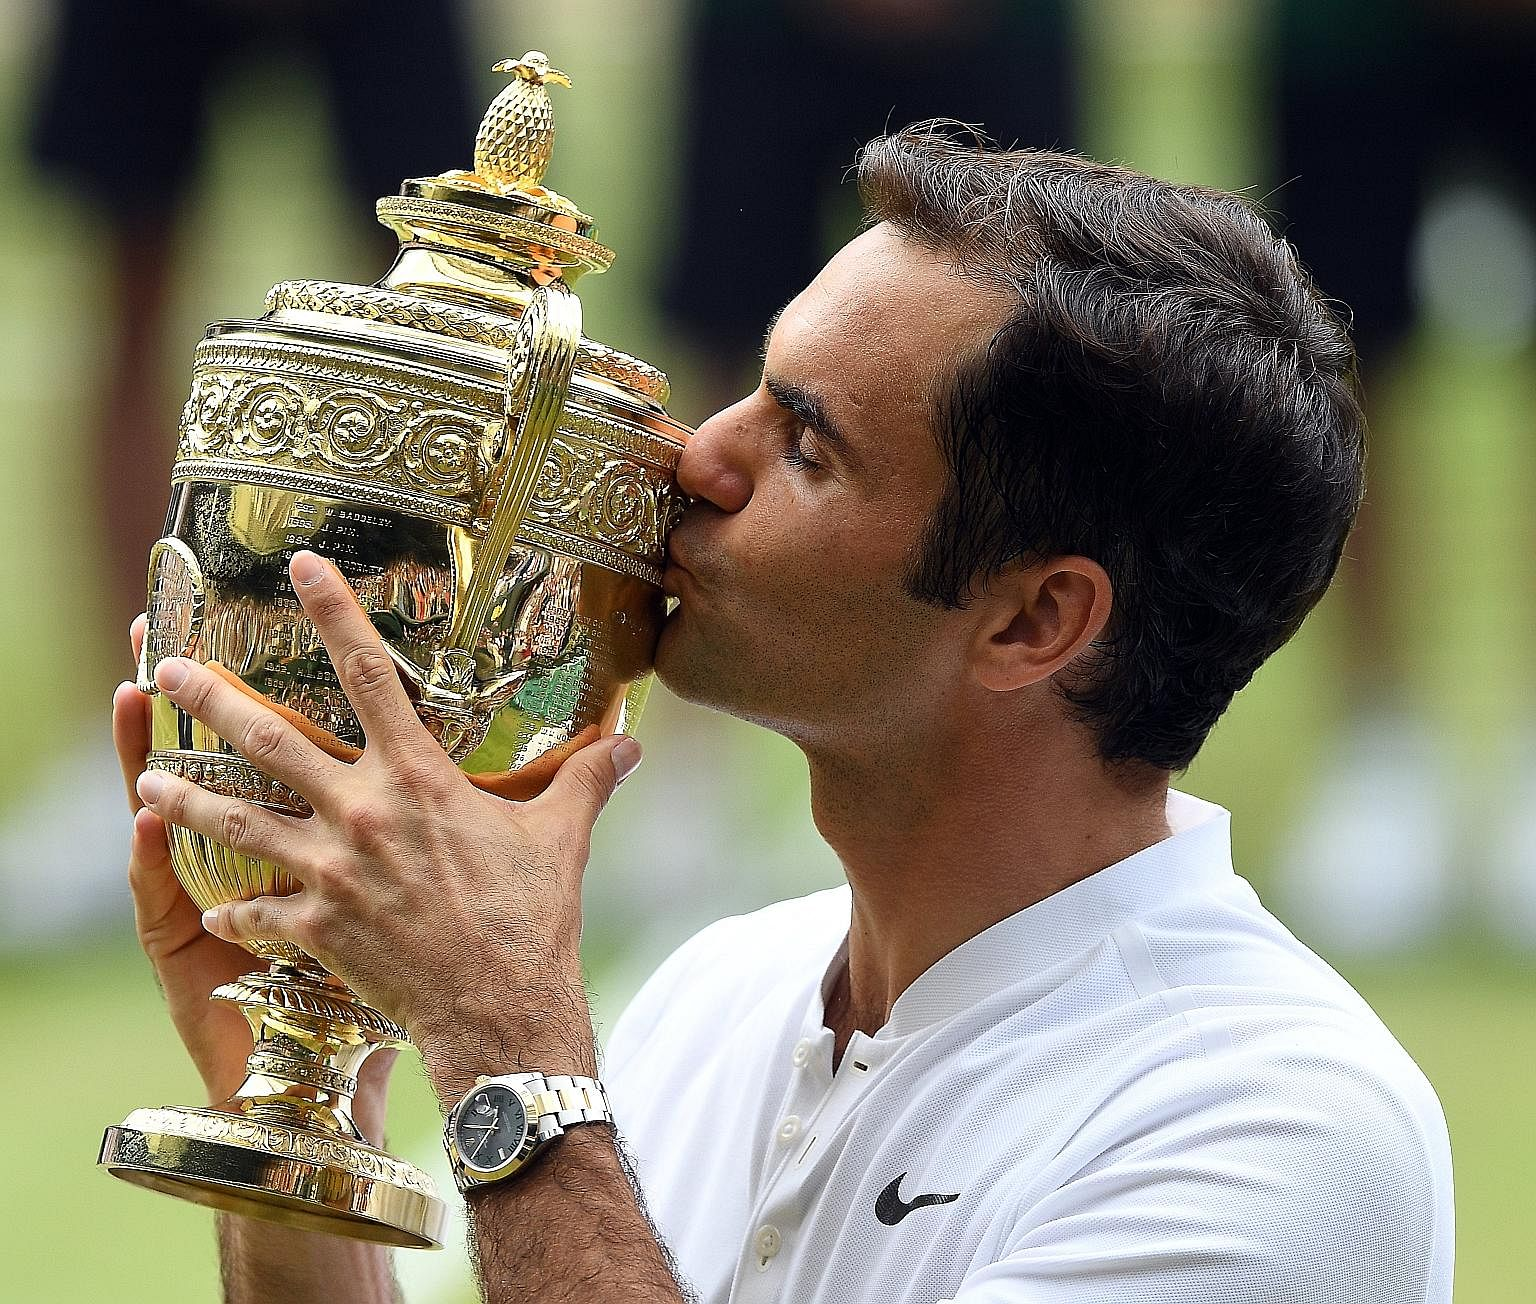 Roger Federer kissing the Wimbledon trophy. With his eighth title at the All England Club, he holds the record for most men's singles crowns alone after sharing it with American Pete Sampras and Briton William Renshaw since 2012.